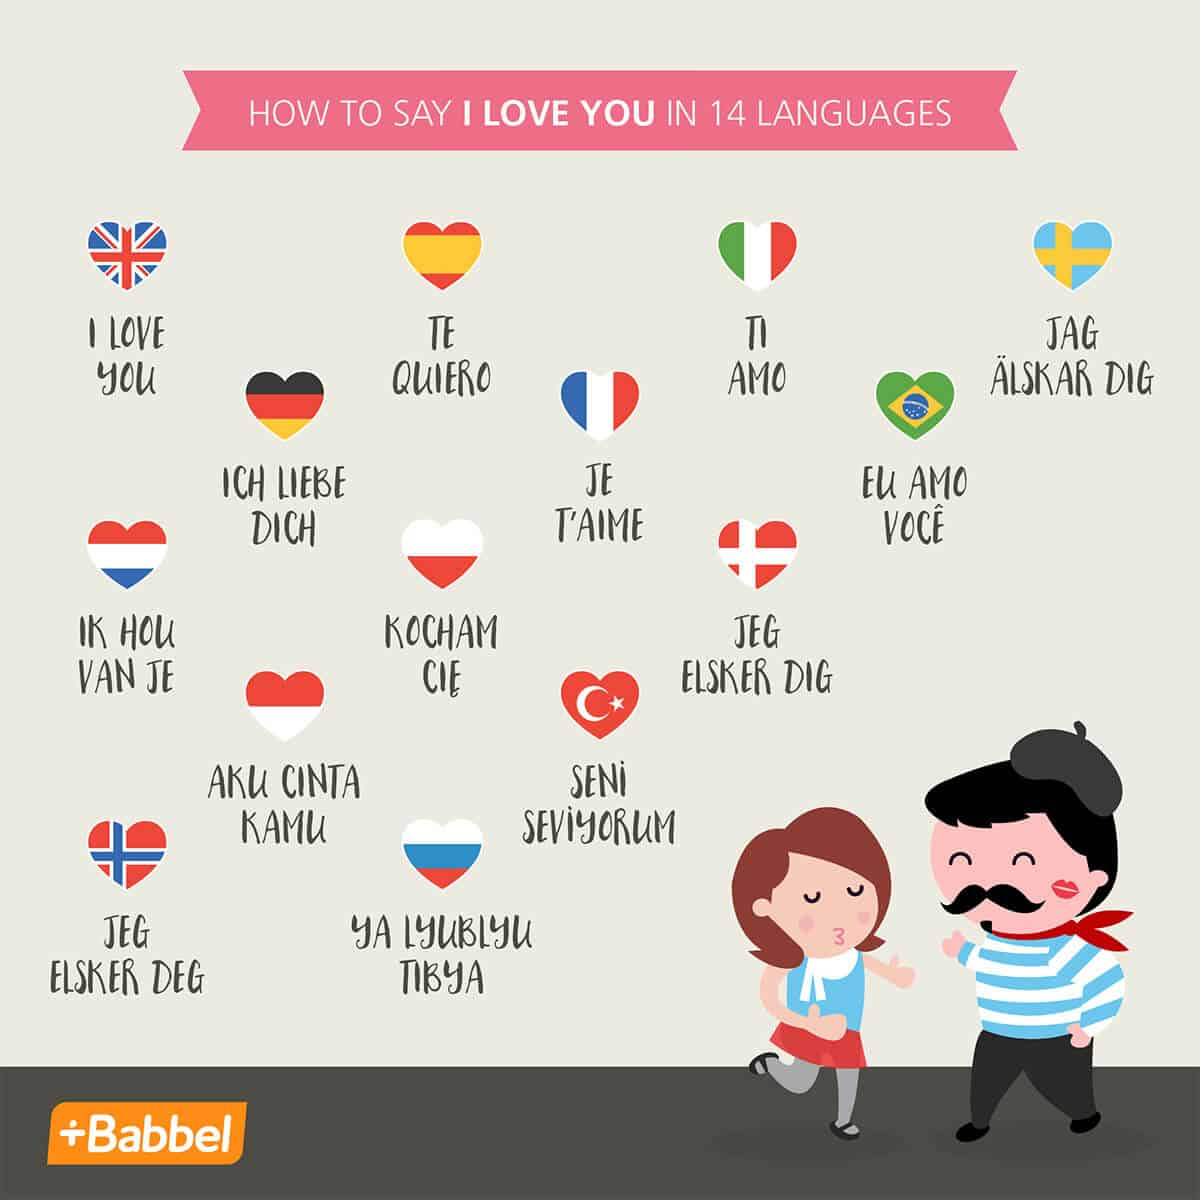 Babbel 14 Languages to say I Love You